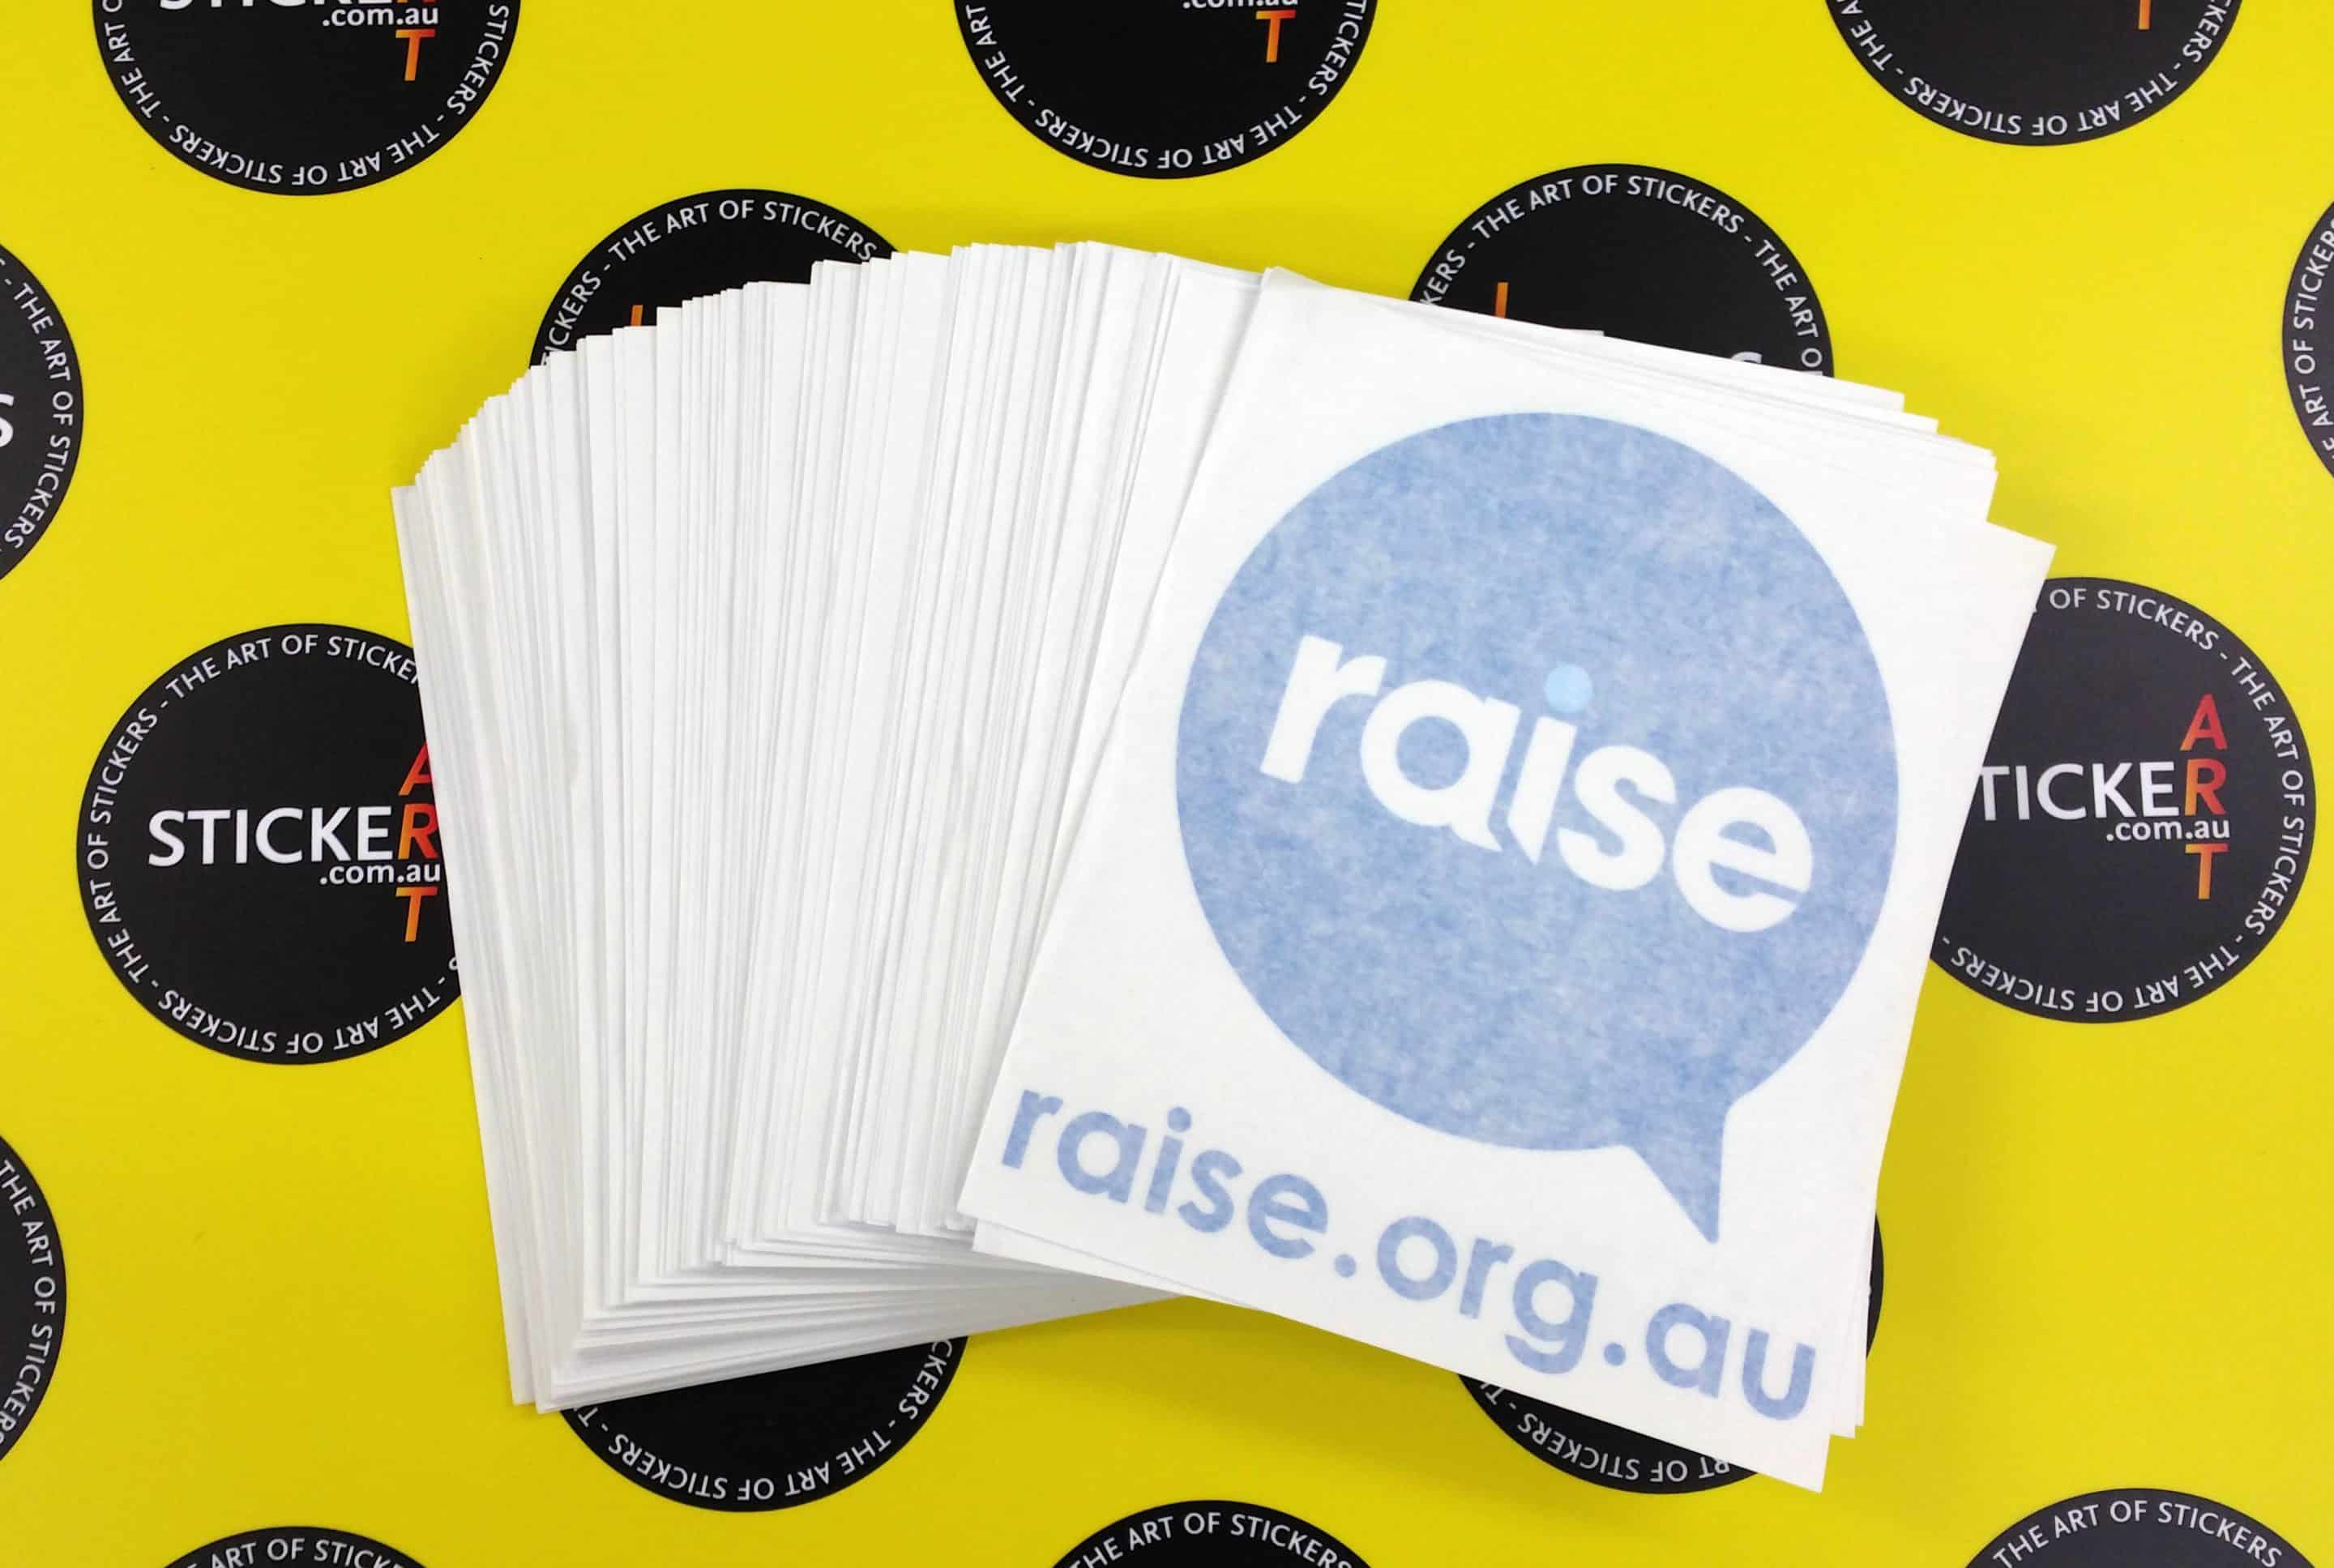 Printed and cut stickers for Raise Foundation